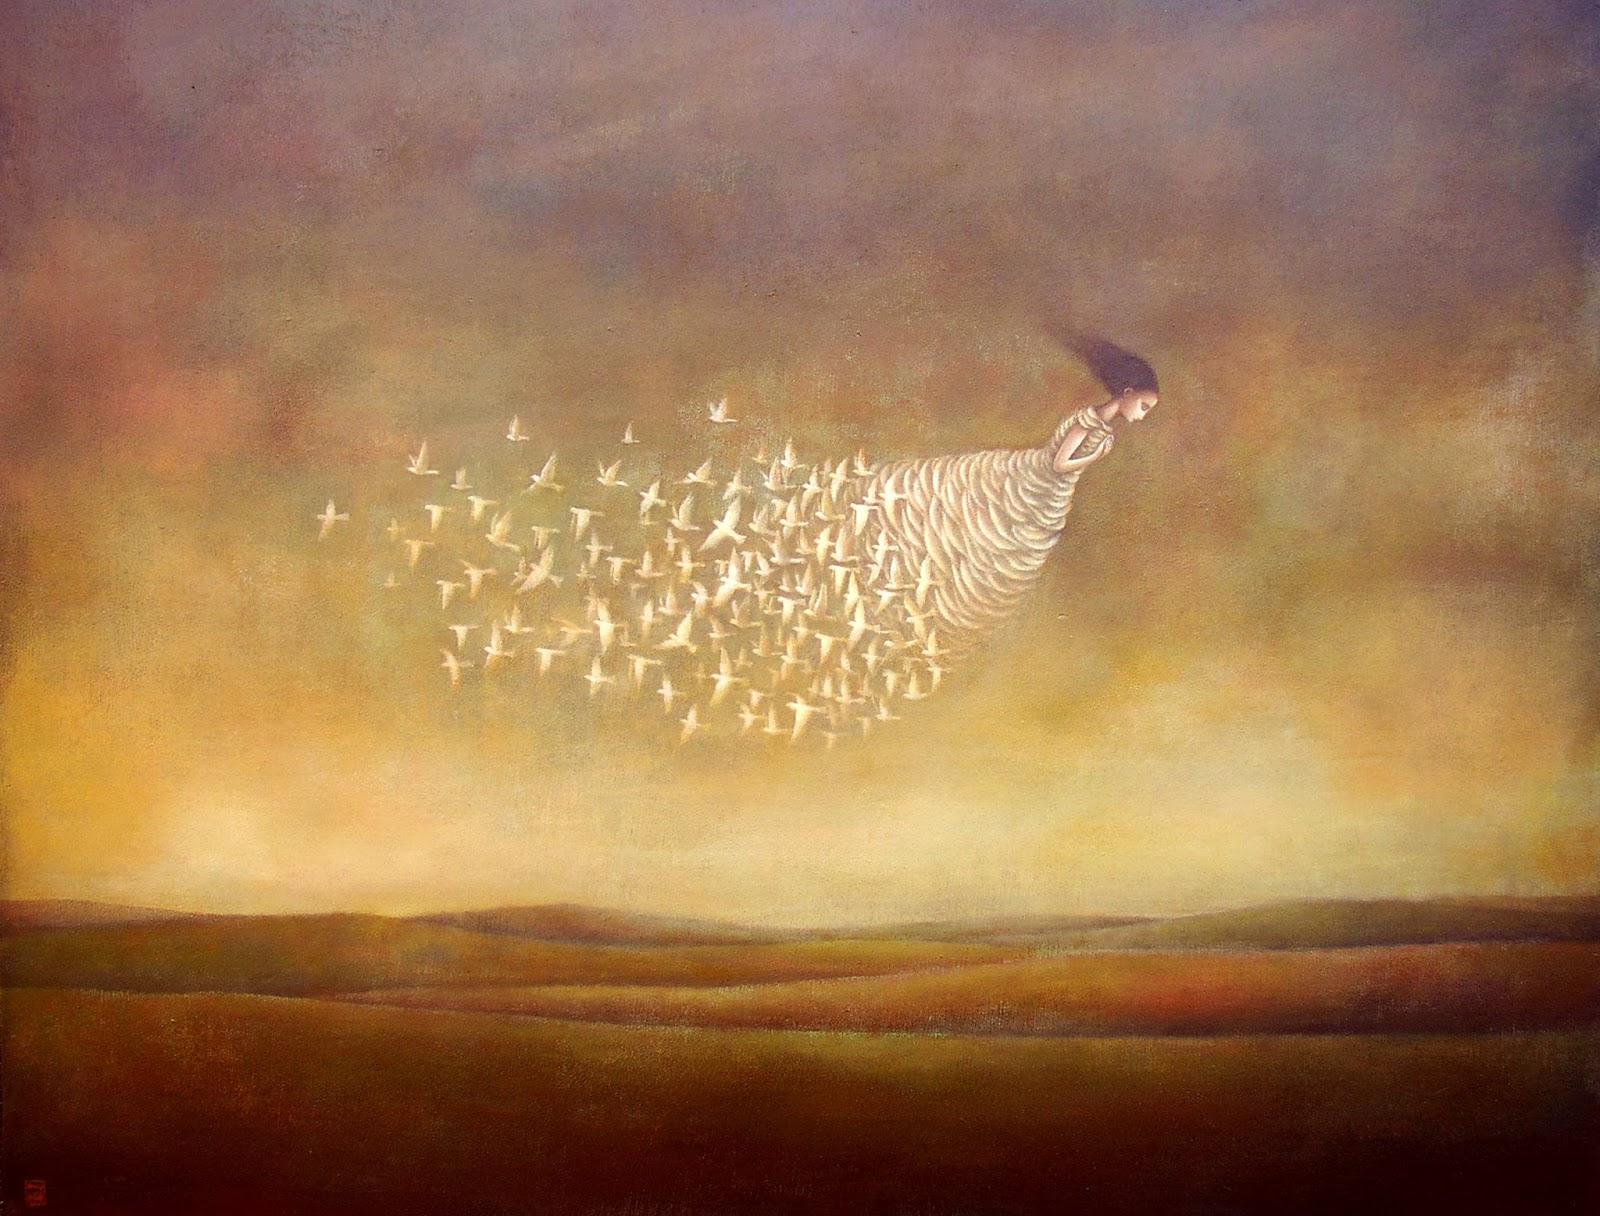 Duy Huynh-www.kaifineart.com-6